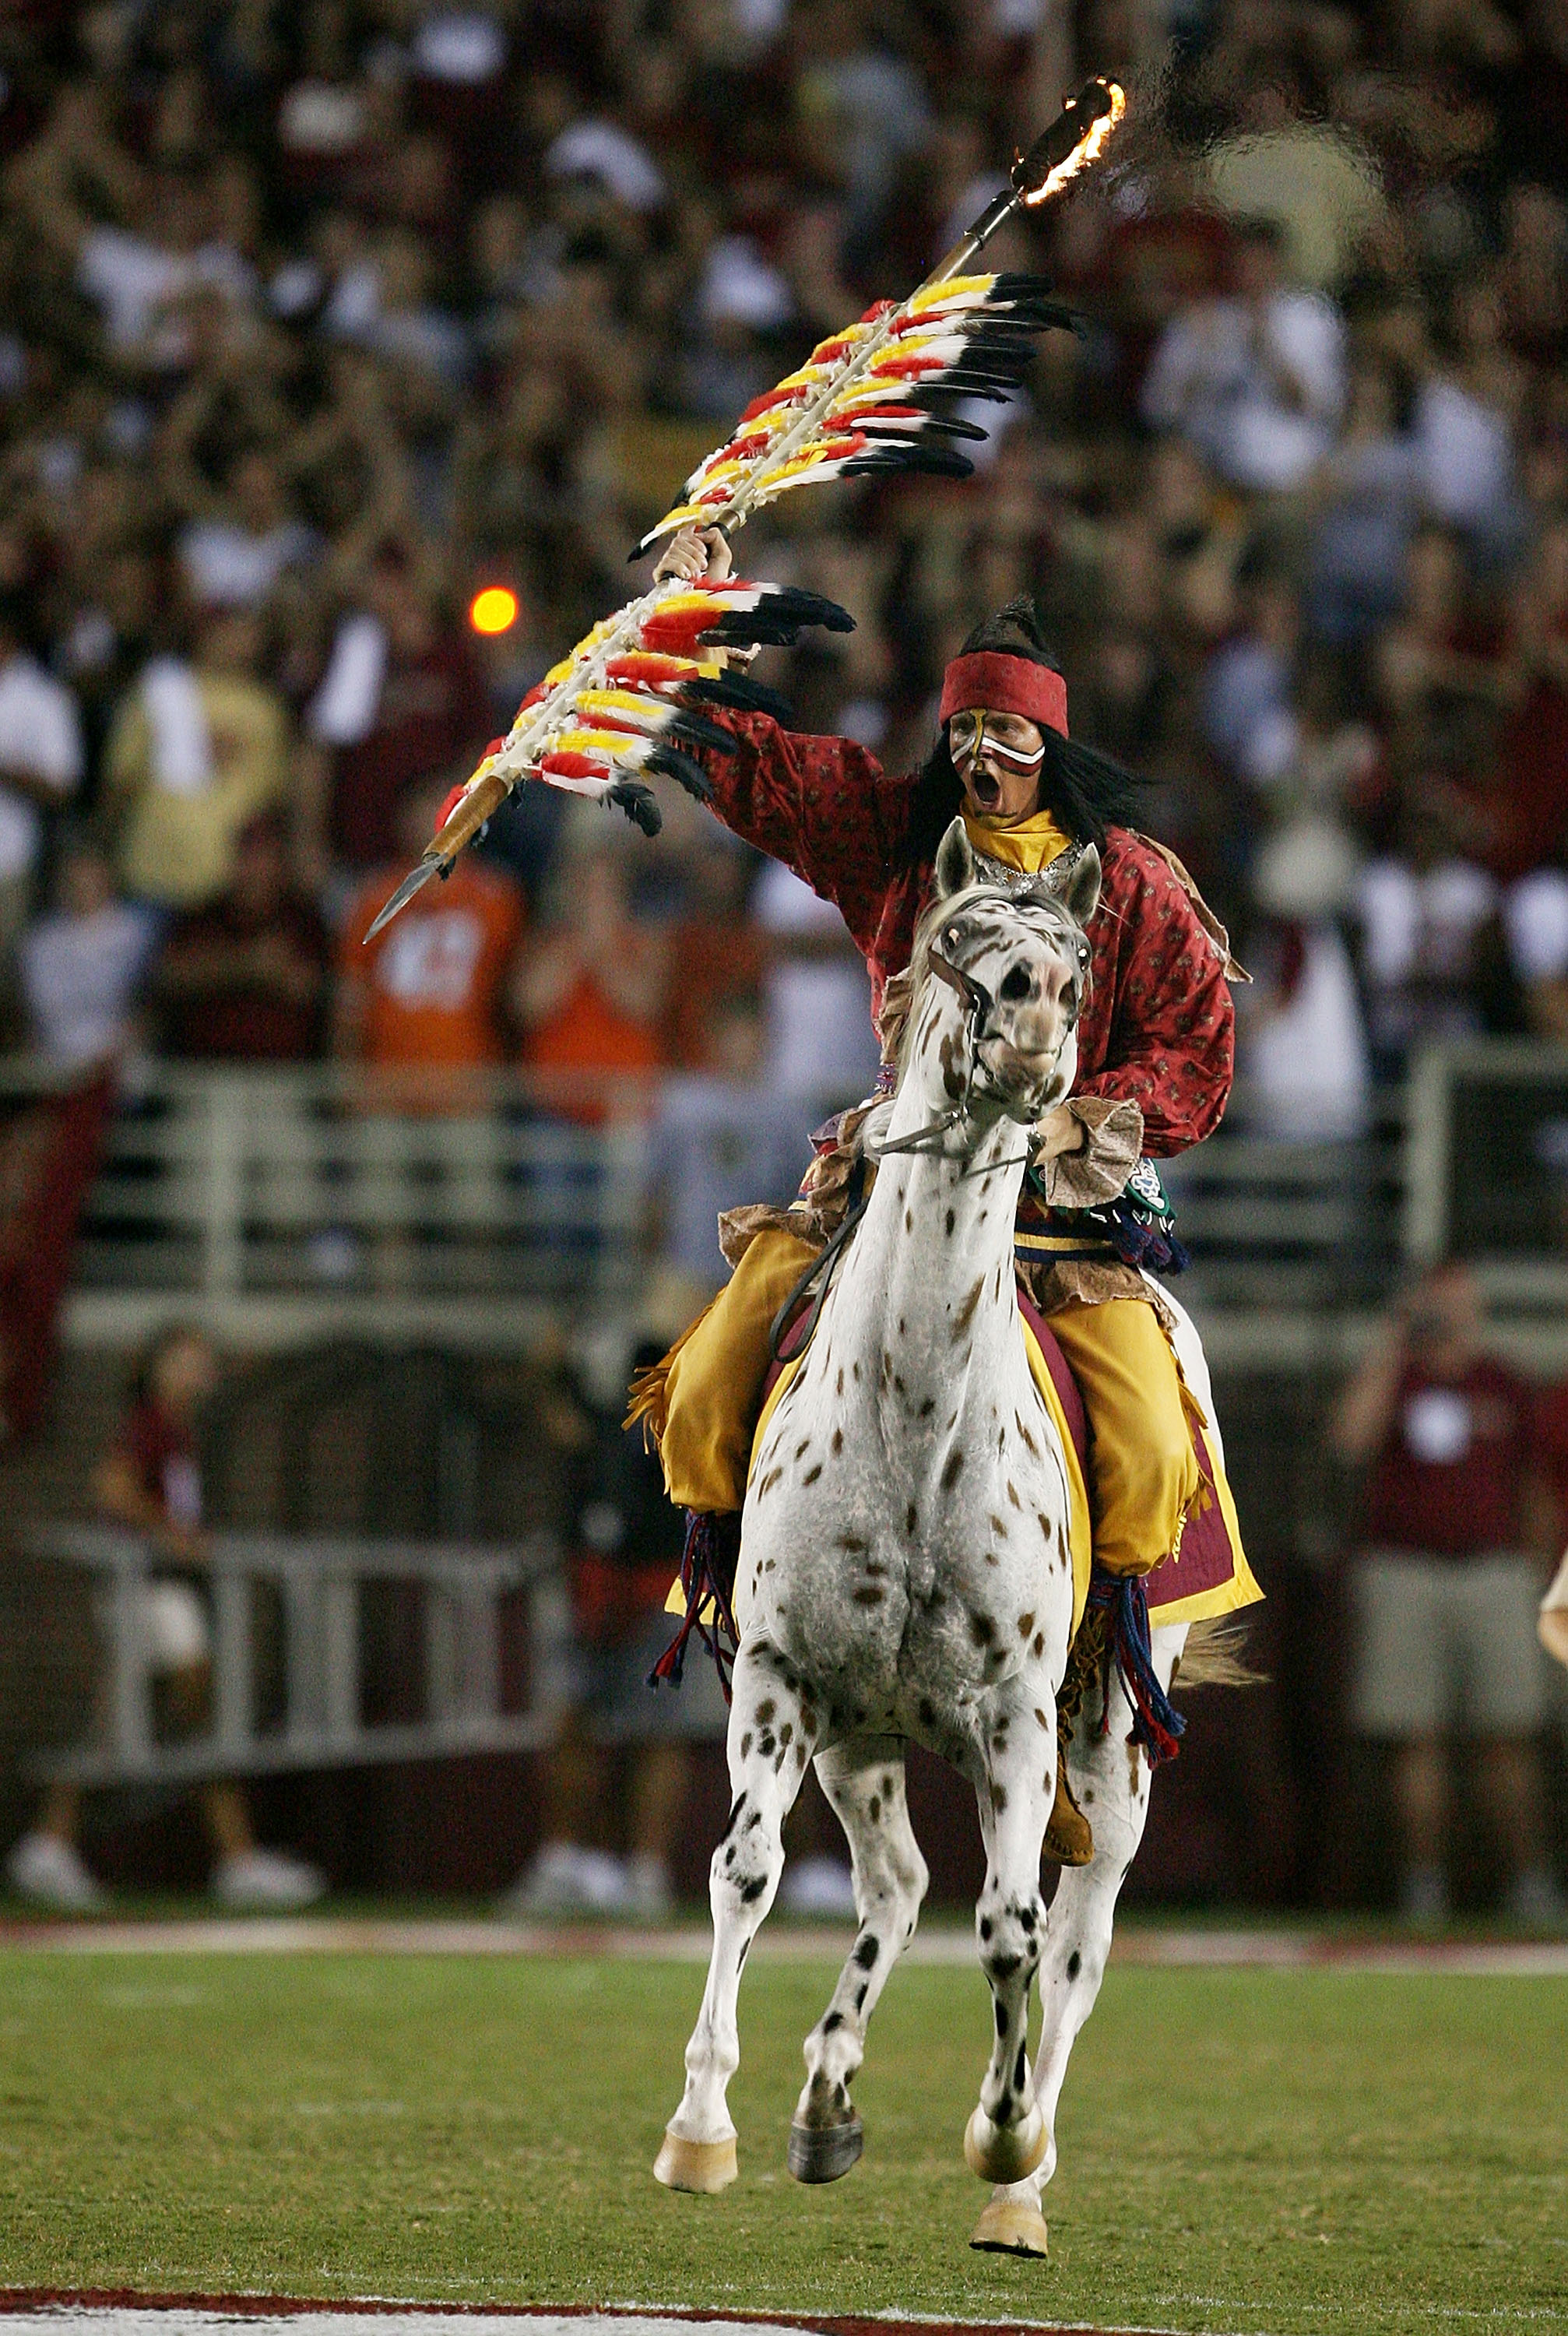 TALLAHASSEE, FL - SEPTEMBER 07:  Renegade and Chief Osceola prepares to bury his spear on the 50-yard line before the Miami Hurricanes take on the Florida State Seminoles at Doak Campbell Stadium on September 7, 2009 in Tallahassee, Florida. Miami defeate